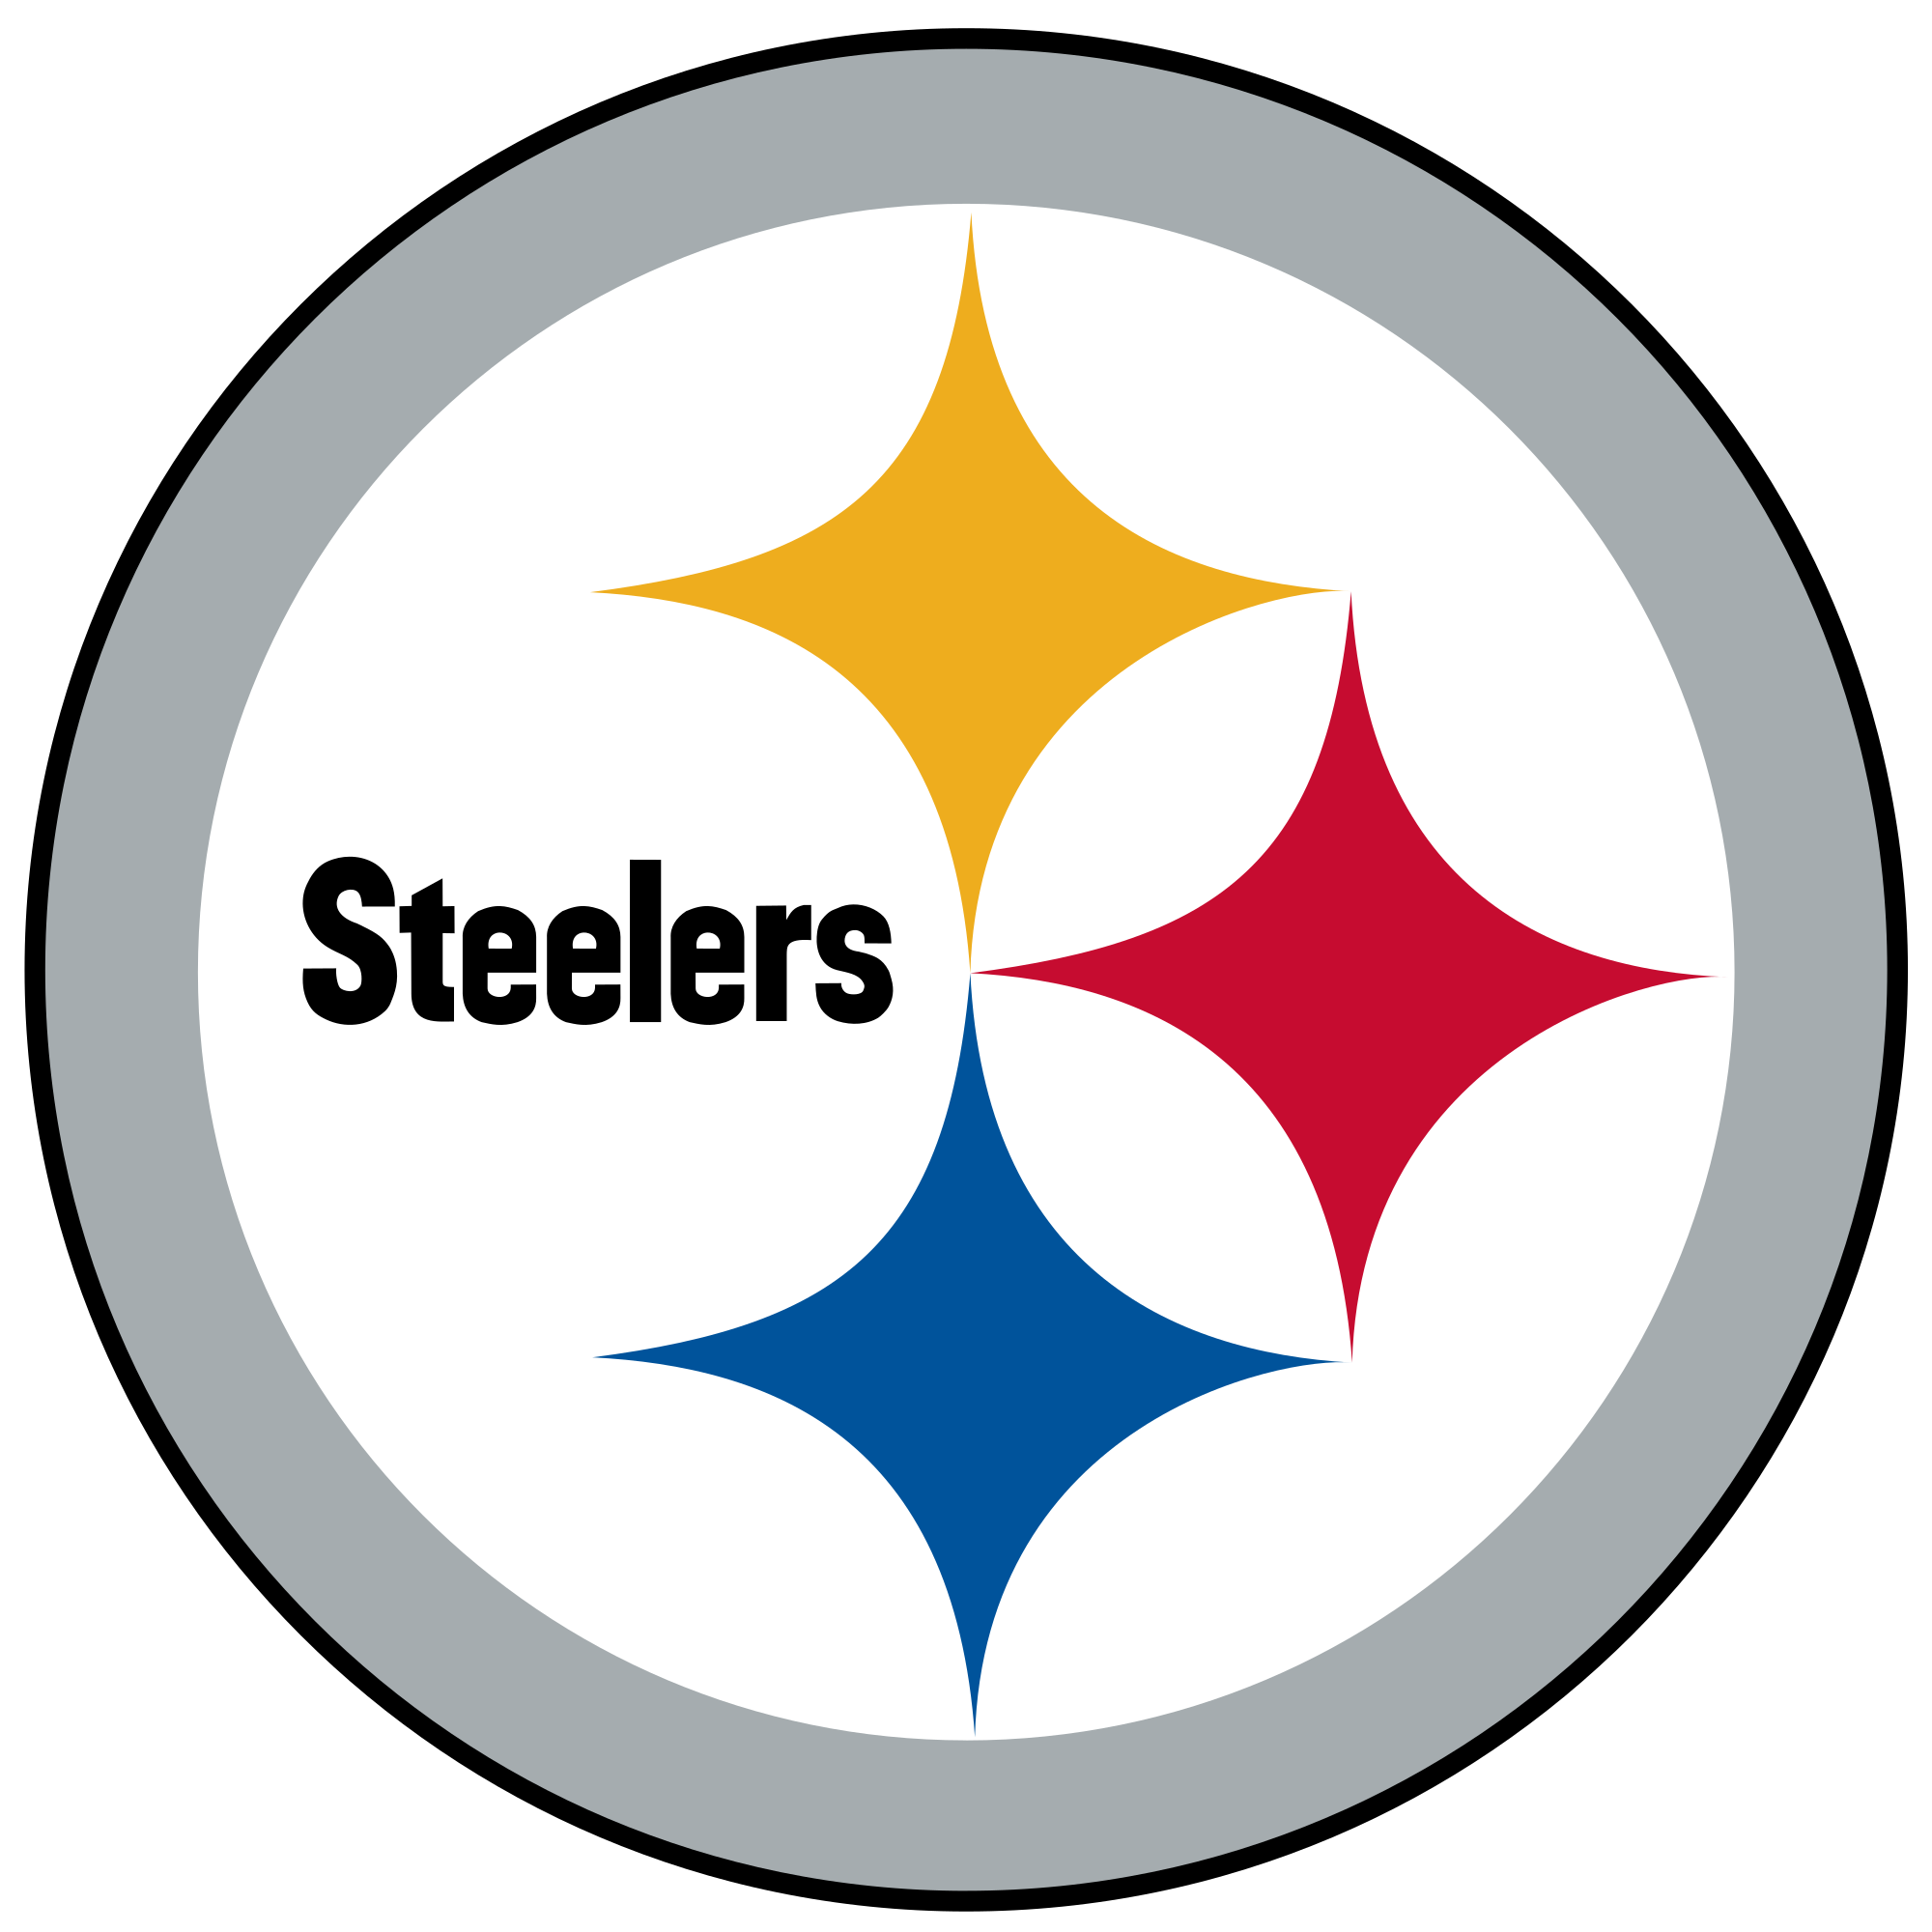 Redskins svg name. Sportsreport steelers stun jags